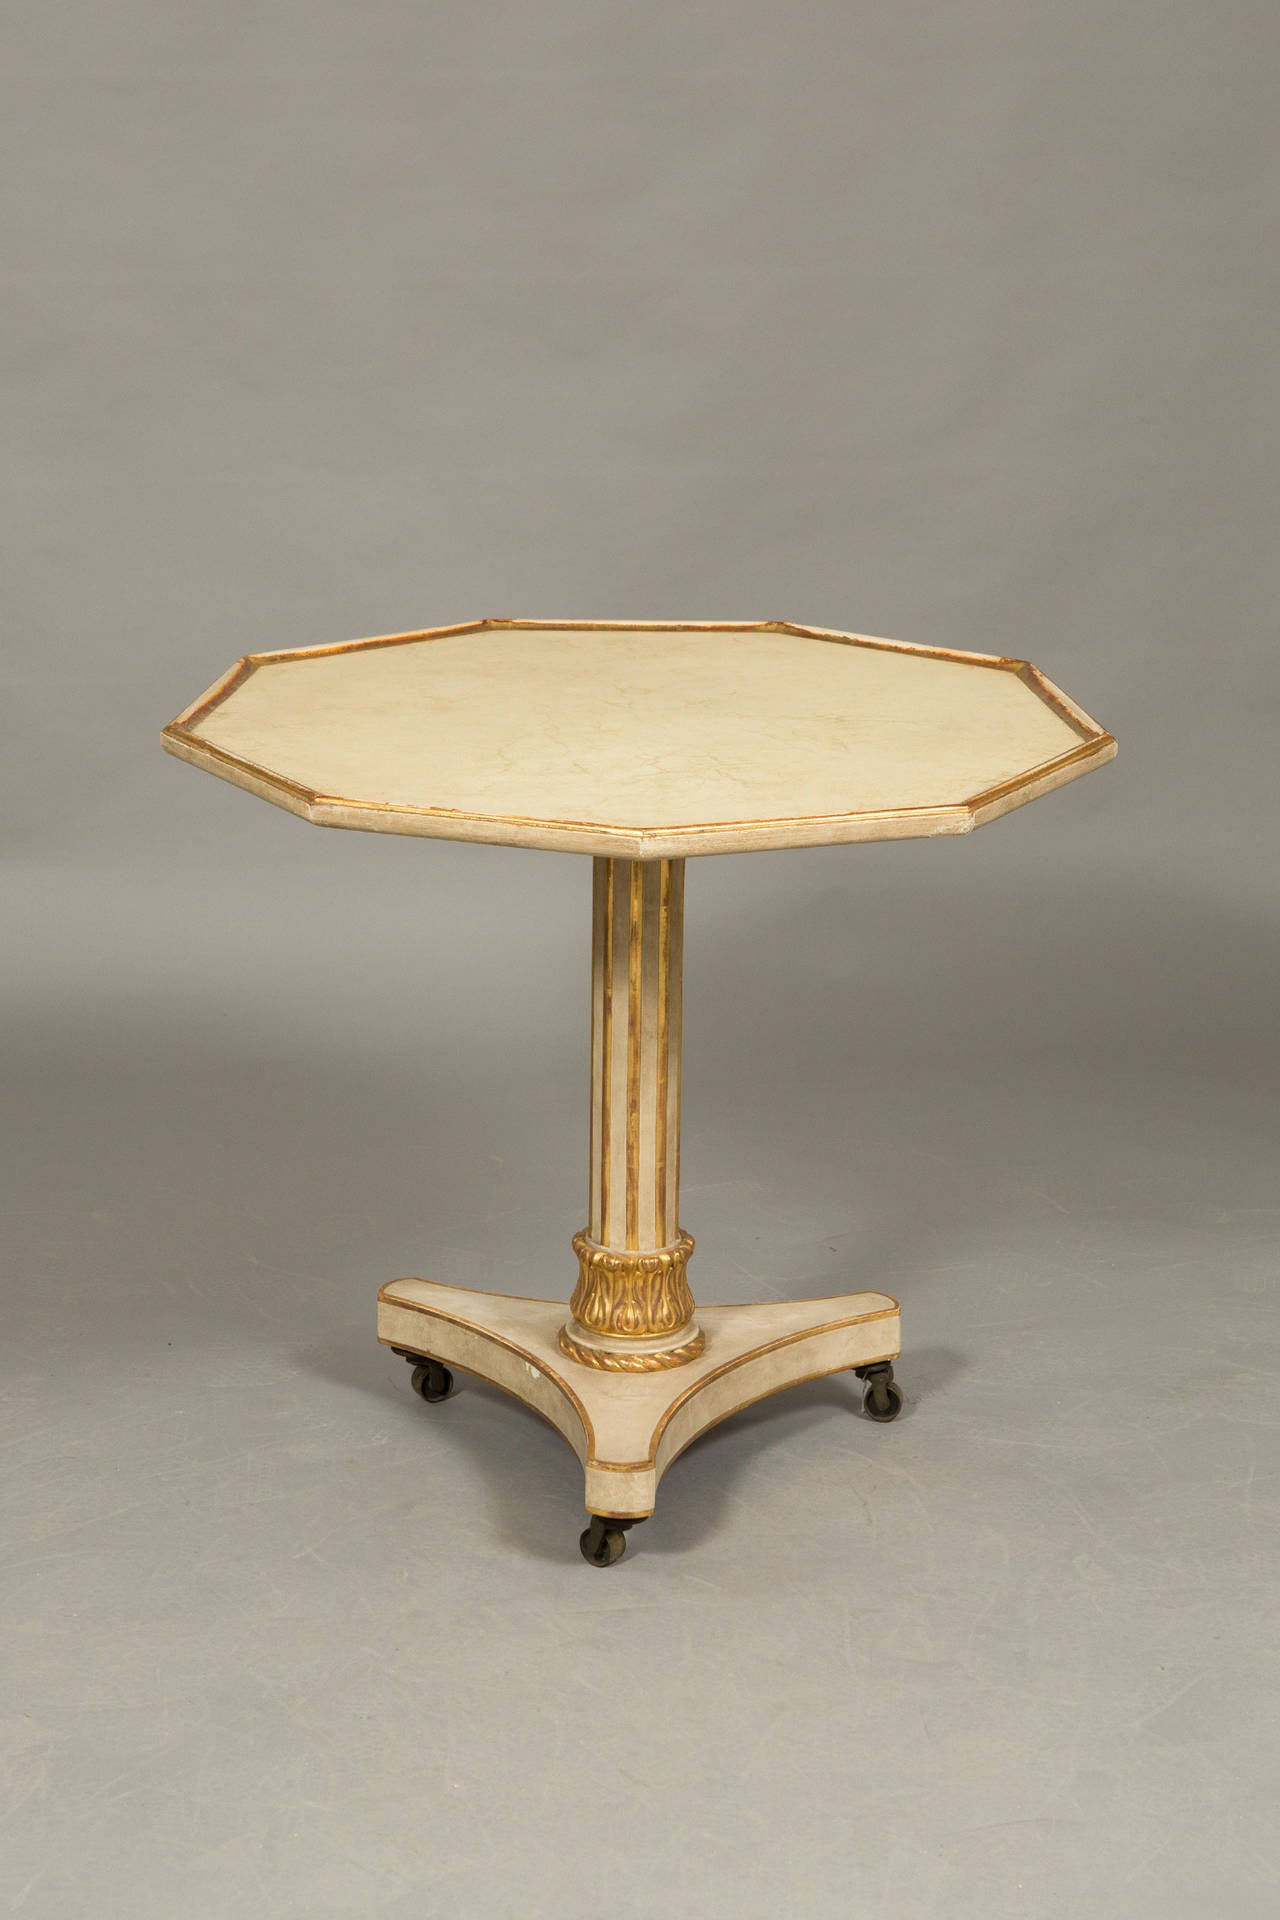 9-sided Neoclassical style parcel gilt center table on casters with antique painted finish. From the estate of Brooke Astor.